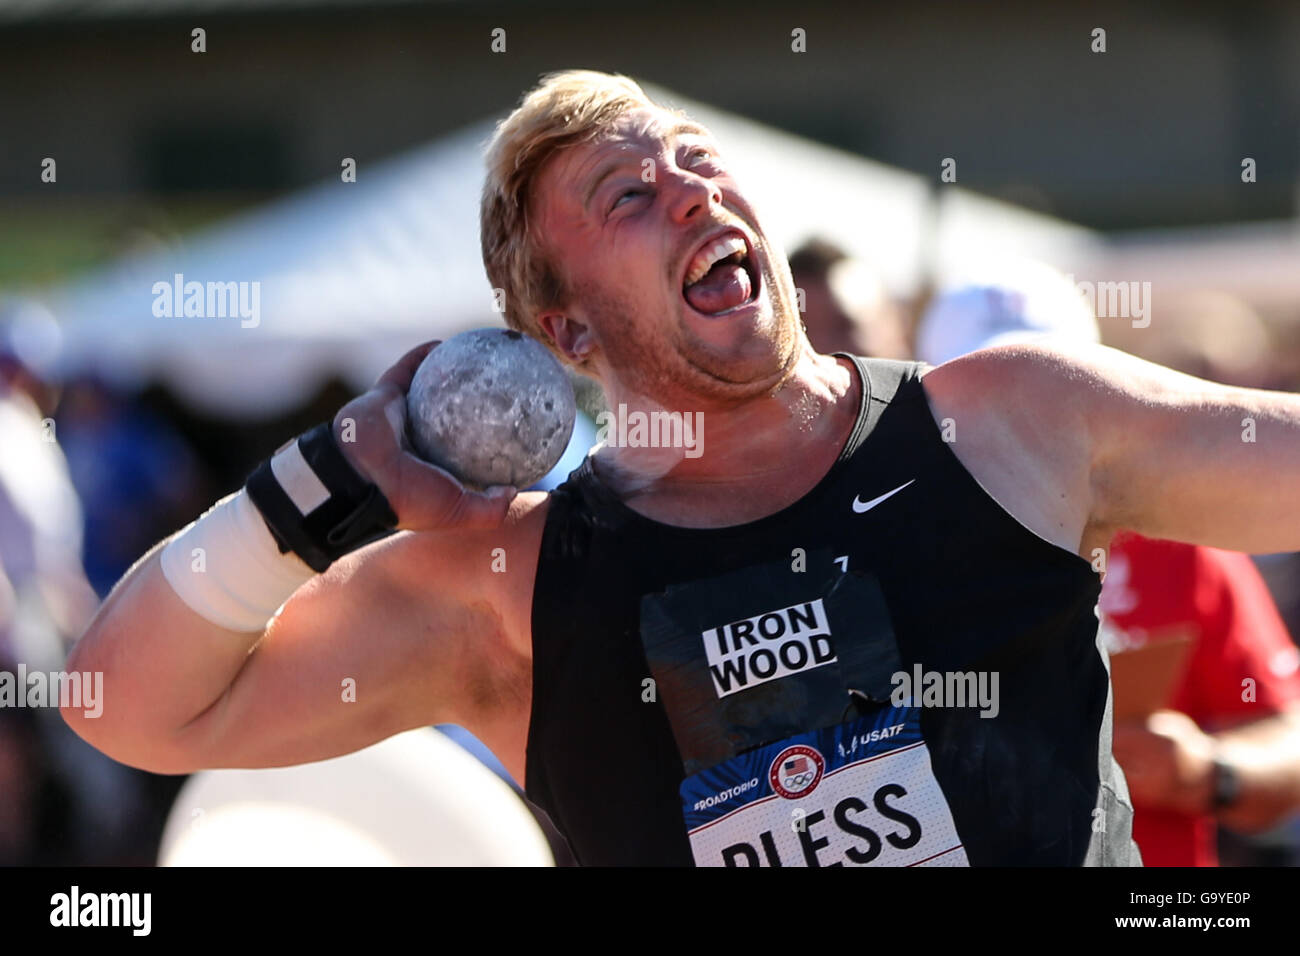 July 1, 2016 - DAVID PLESS throws the shot at the USA Track & Field Olympic Trials at Haward Field in Eugene, - Stock Image